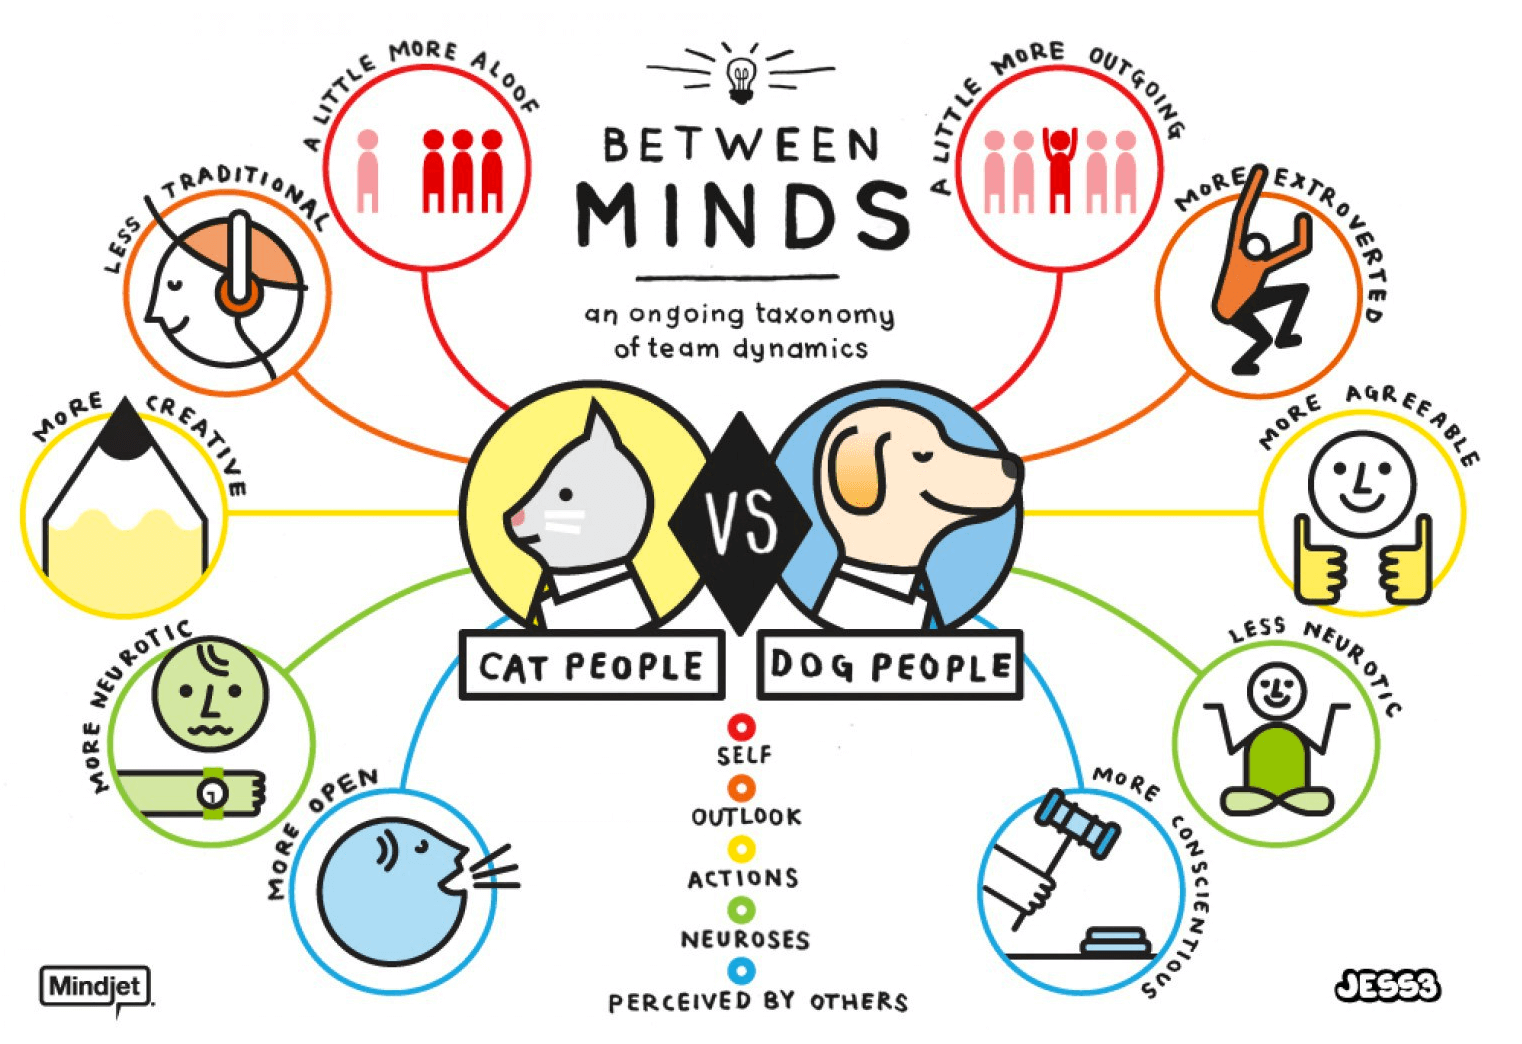 Cat people vs Dog people graphic